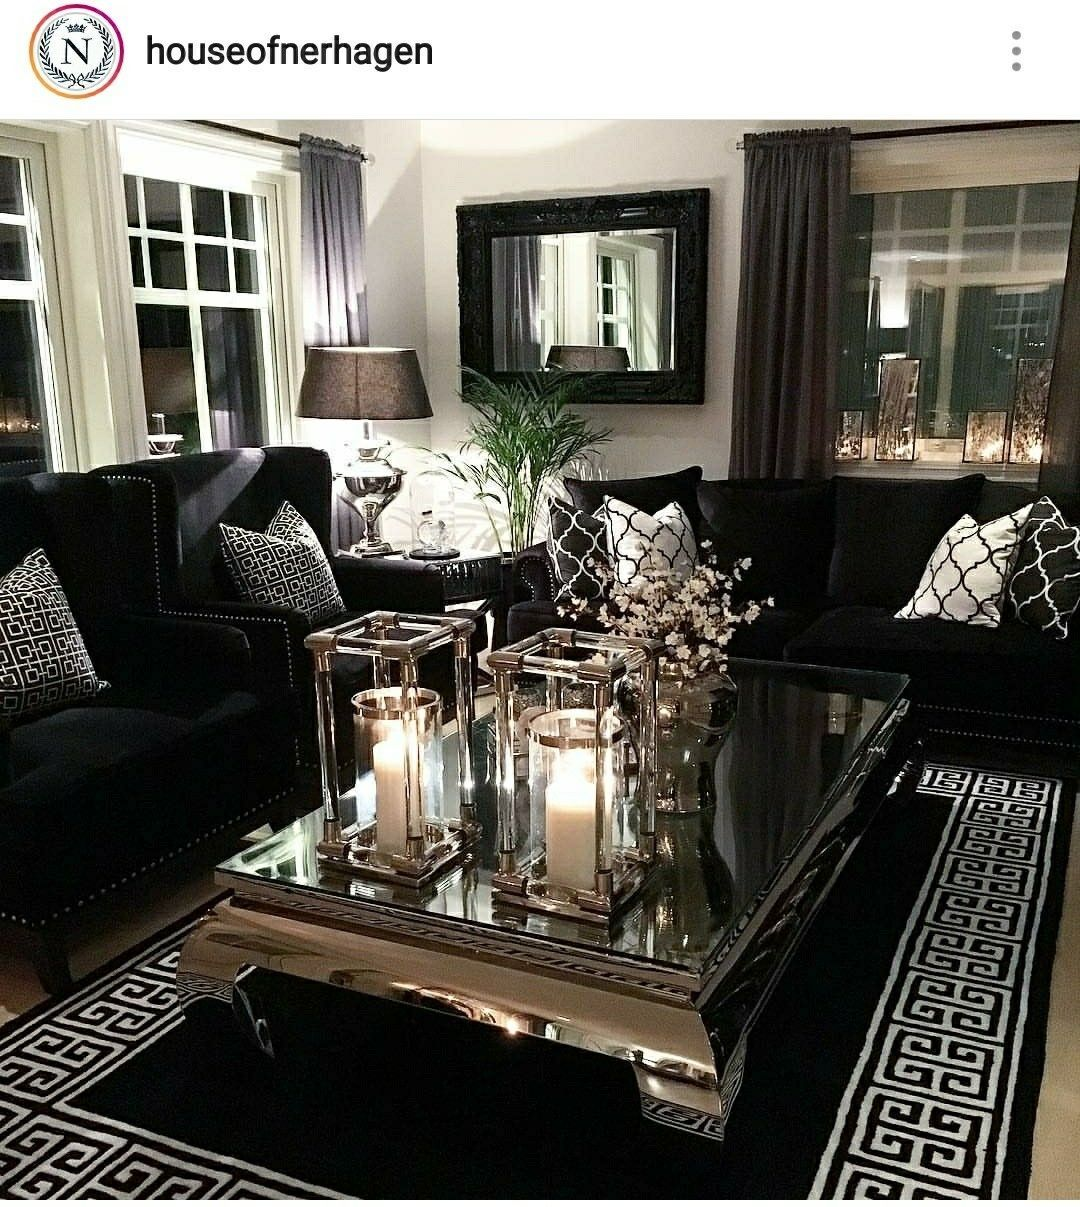 Black Sofa And Chairs For Media Room Couches Living Room Apartment Black Living Room Dec In 2021 Couches Living Room Apartment Gold Living Room Black Couch Living Room